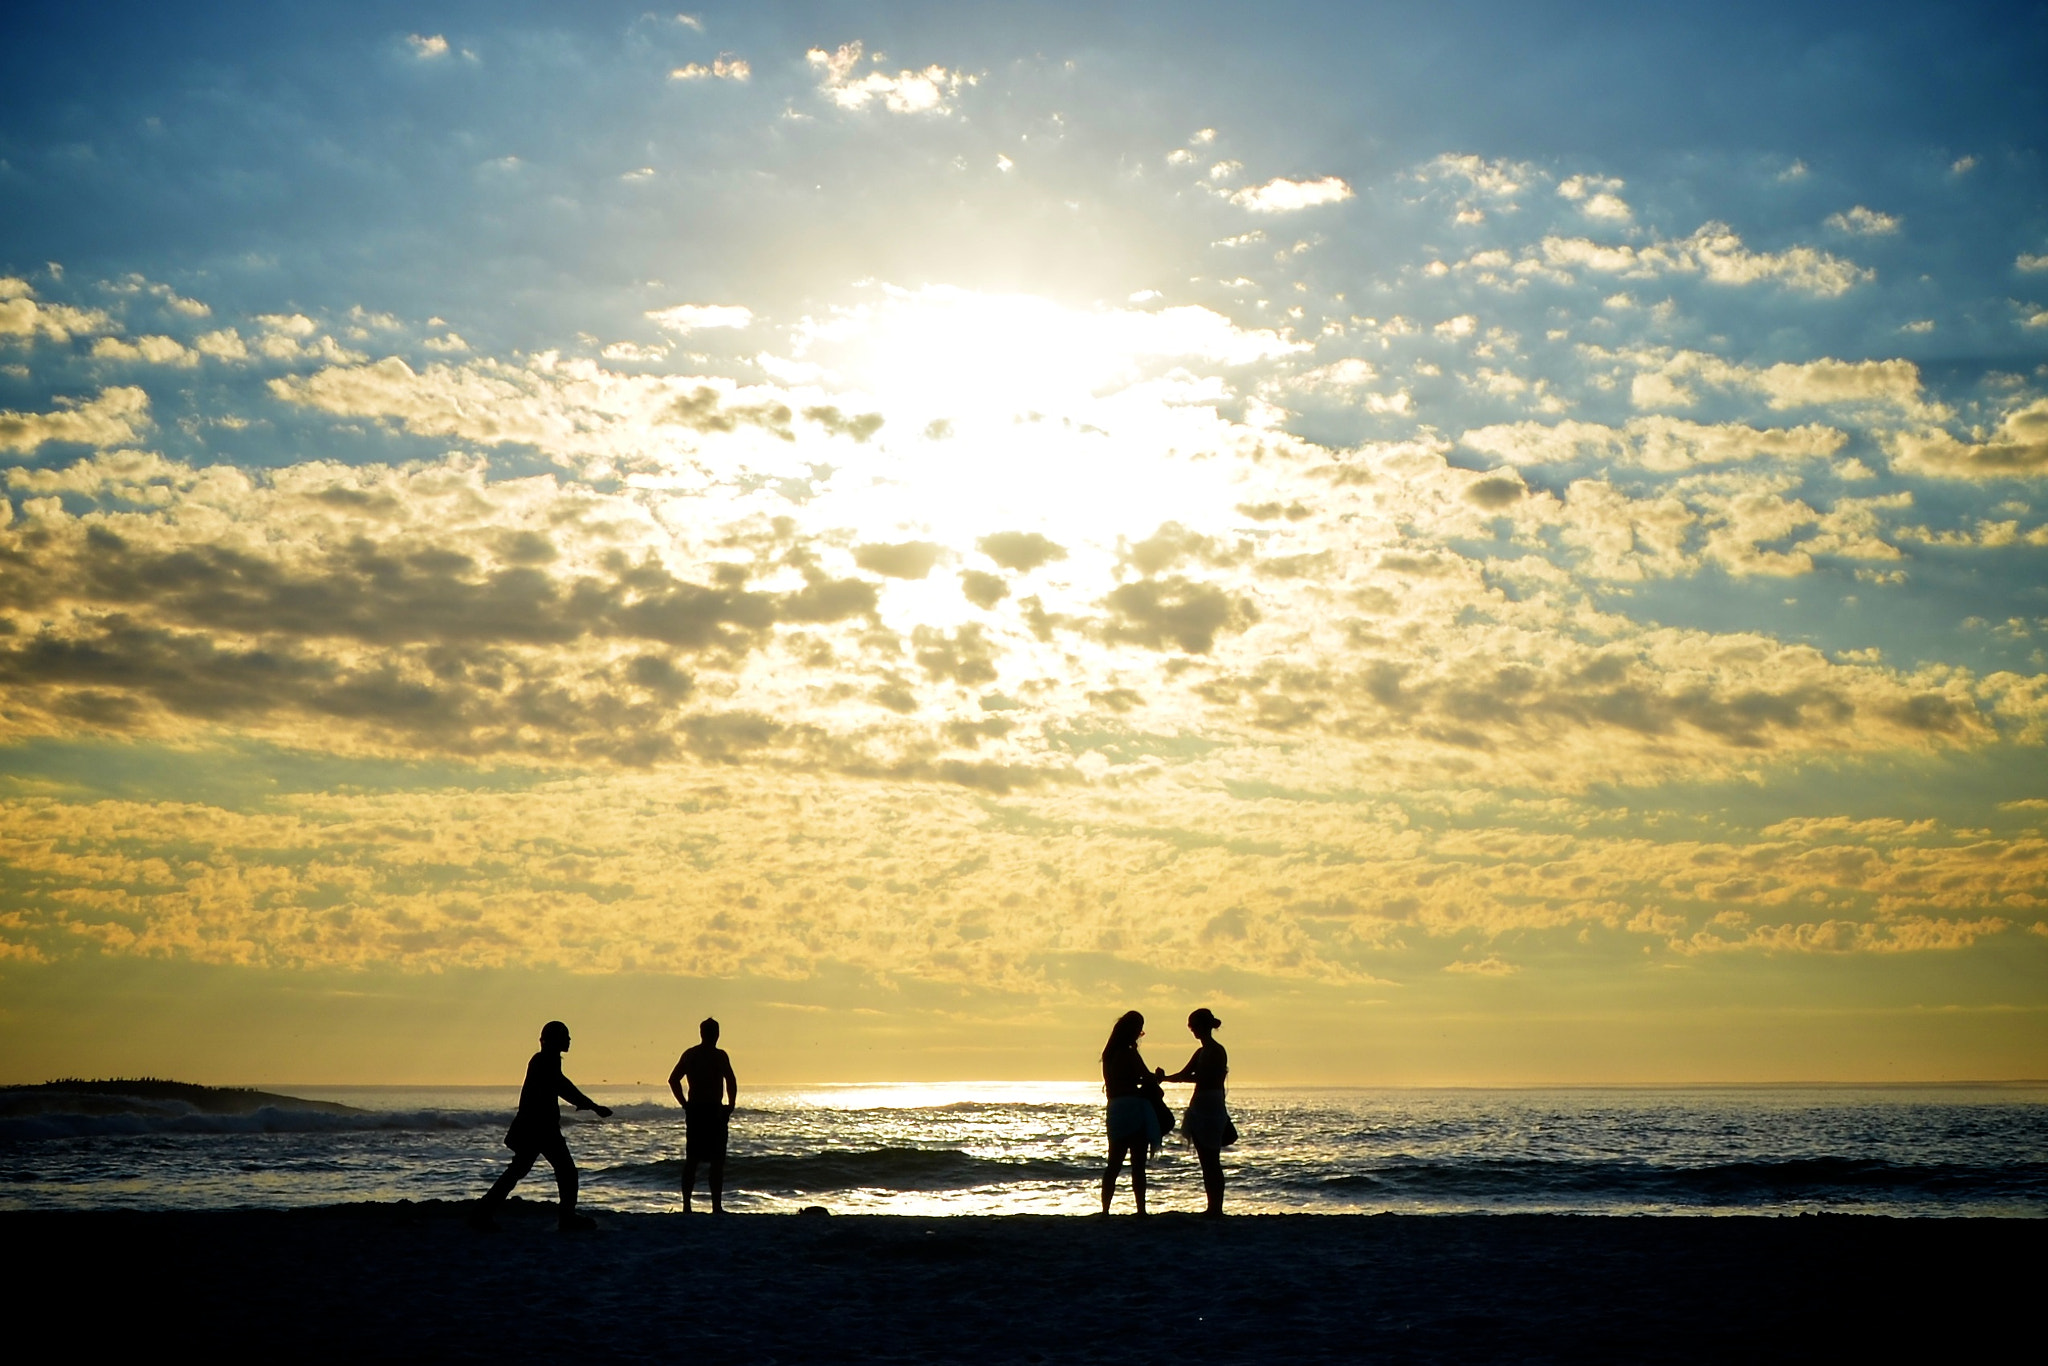 Photograph At the beach by L. Santos on 500px